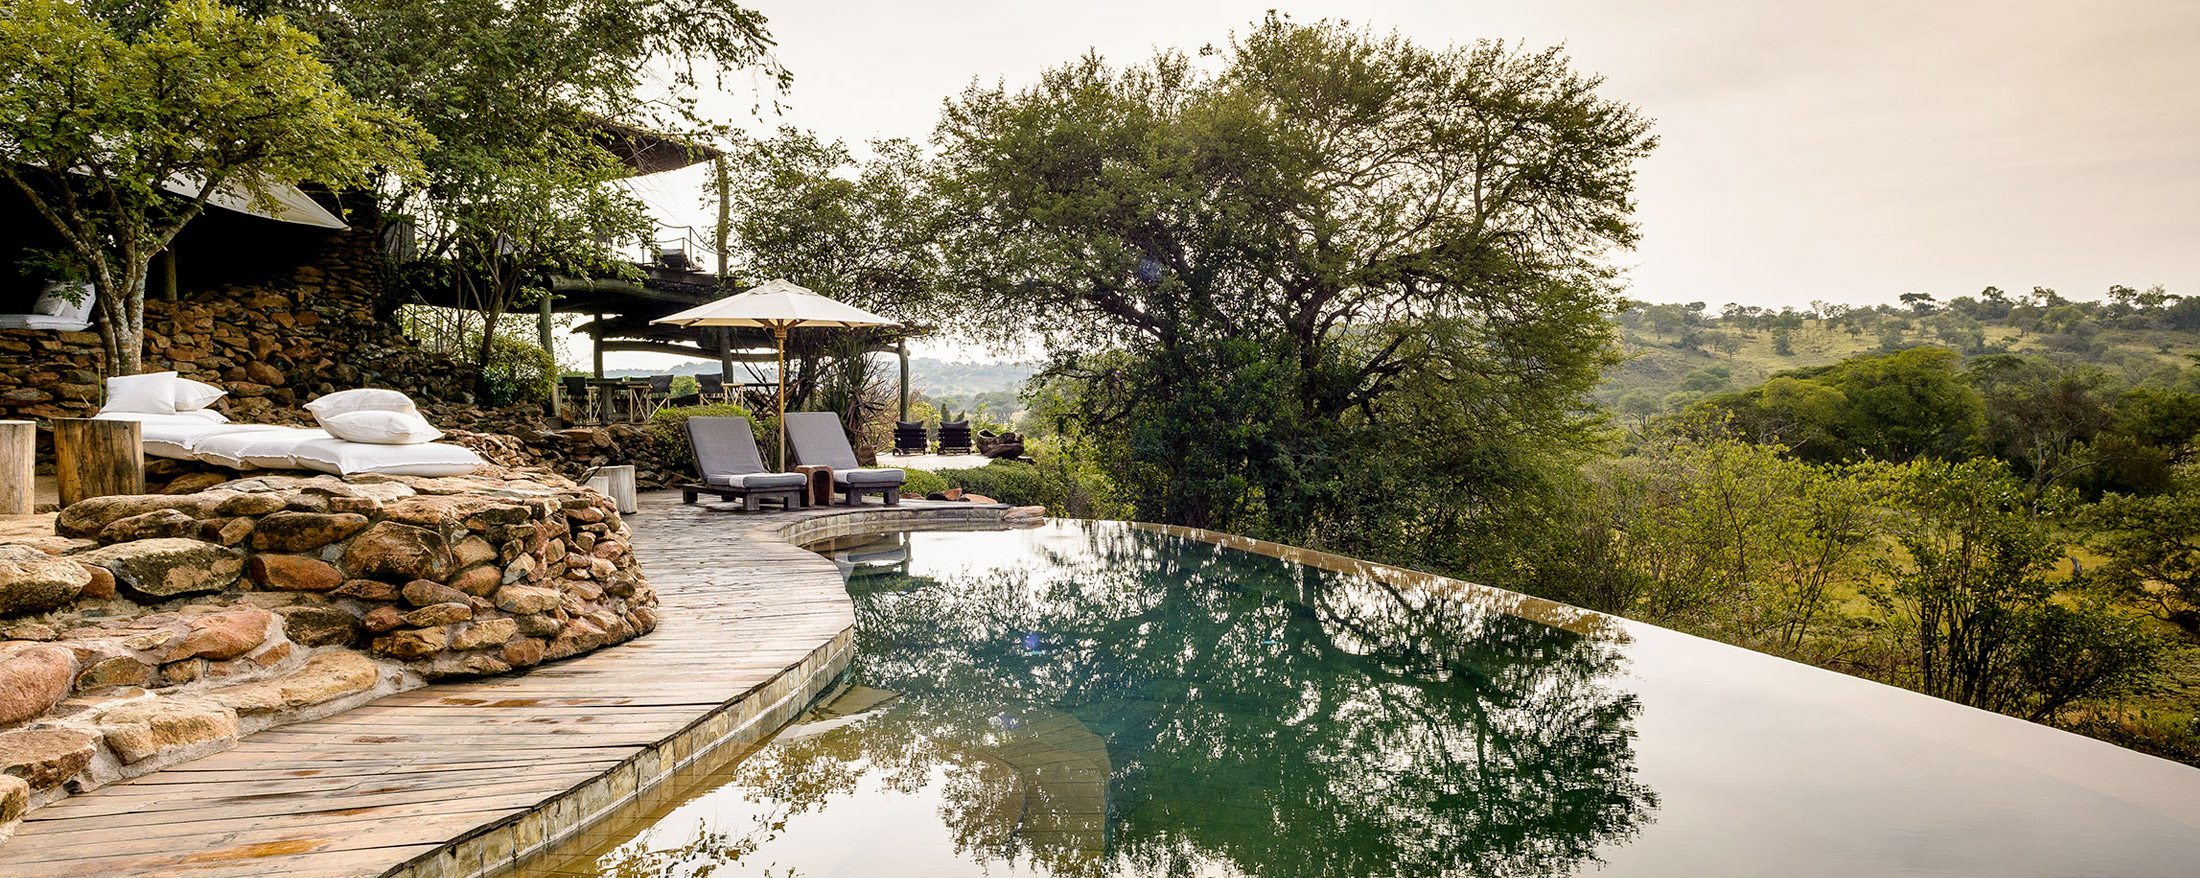 Lie next to one of the infinity pools at Faru Faru Lodge and take in sweeping views of the Grumeti Reserves.